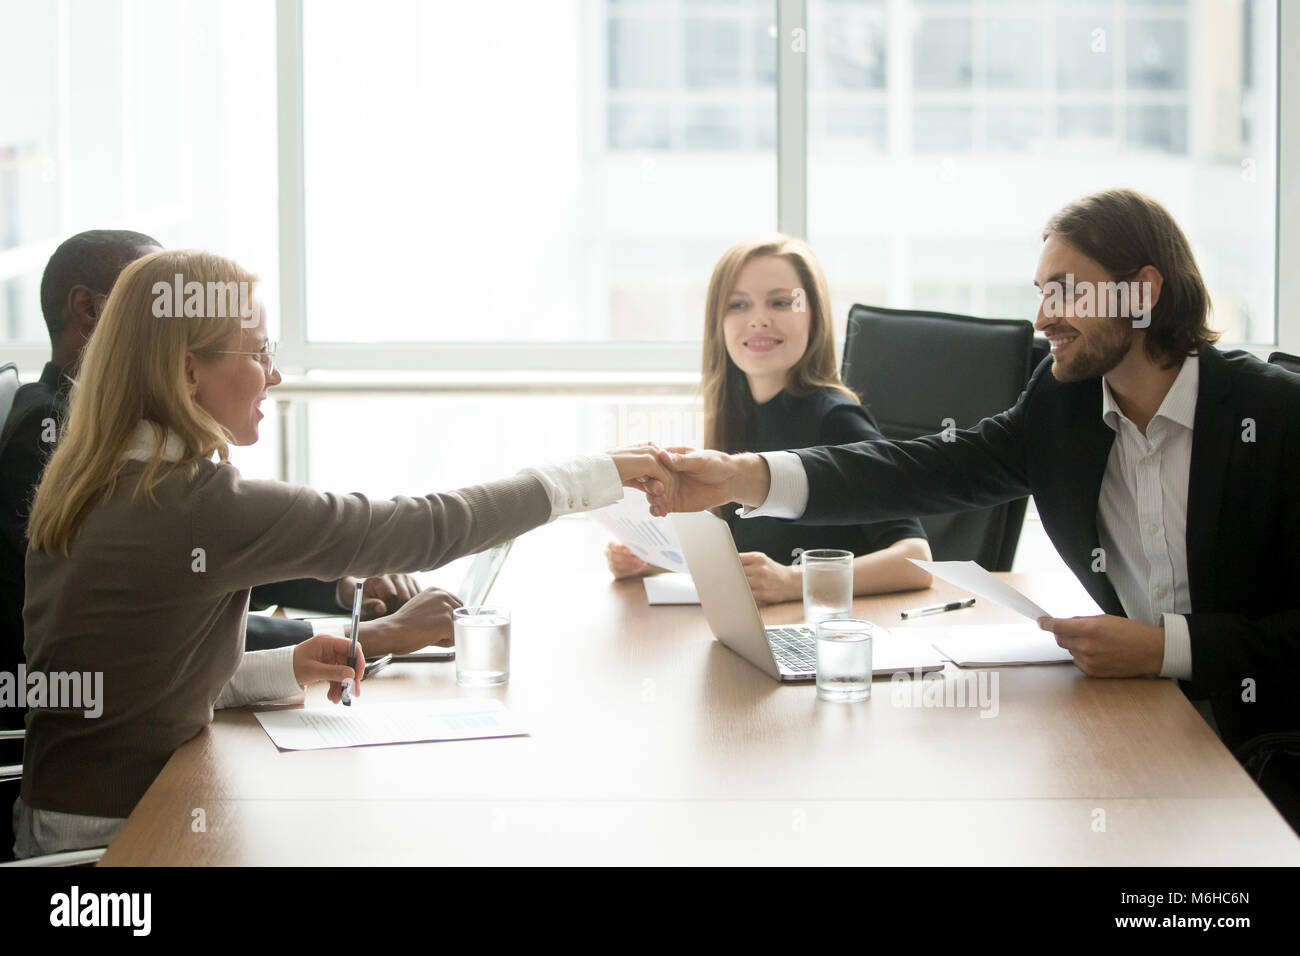 Smiling businessman and businesswoman shaking hands at divers t Photo Stock